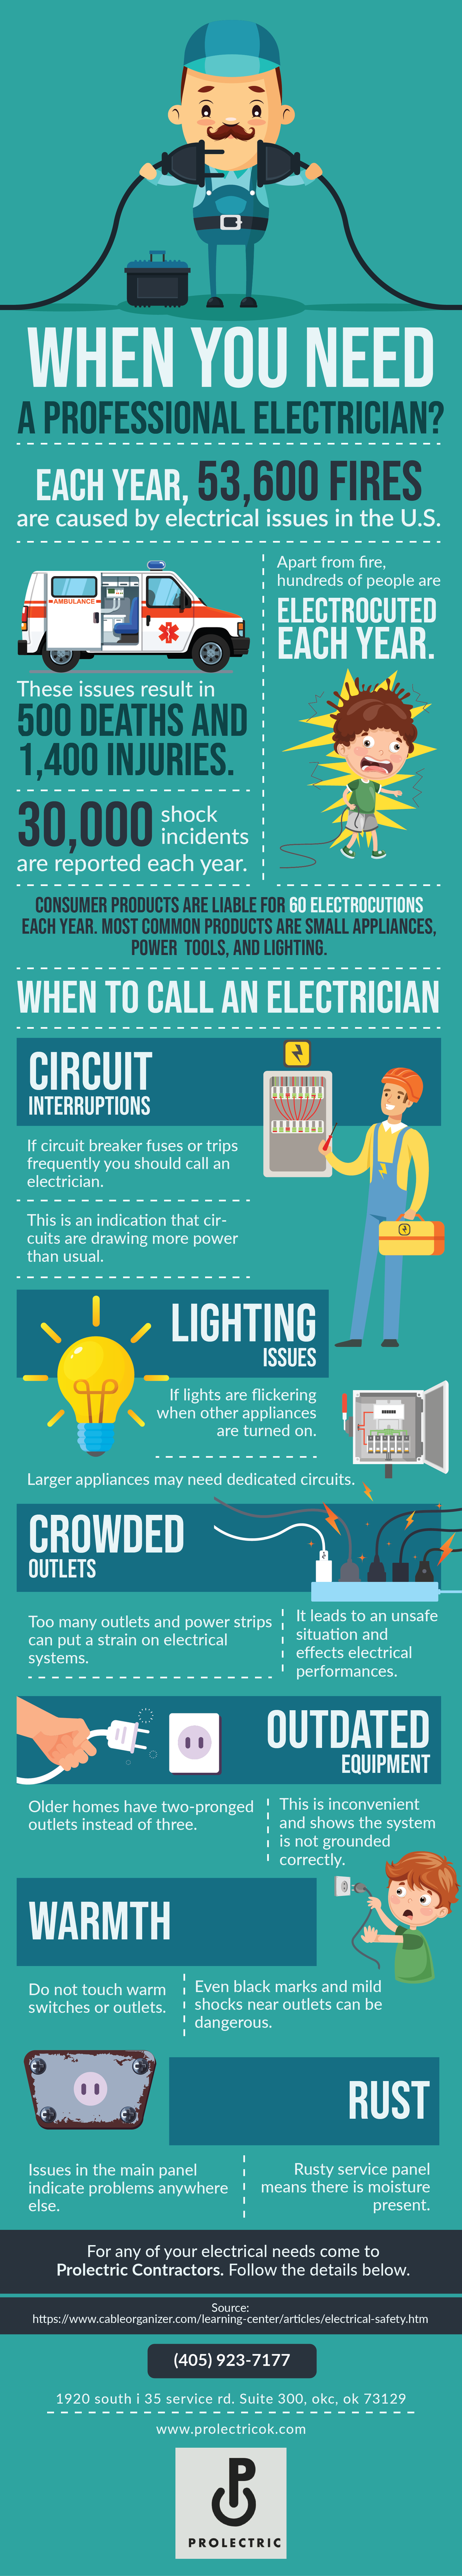 24 hour electrician okc-Prolectric.png